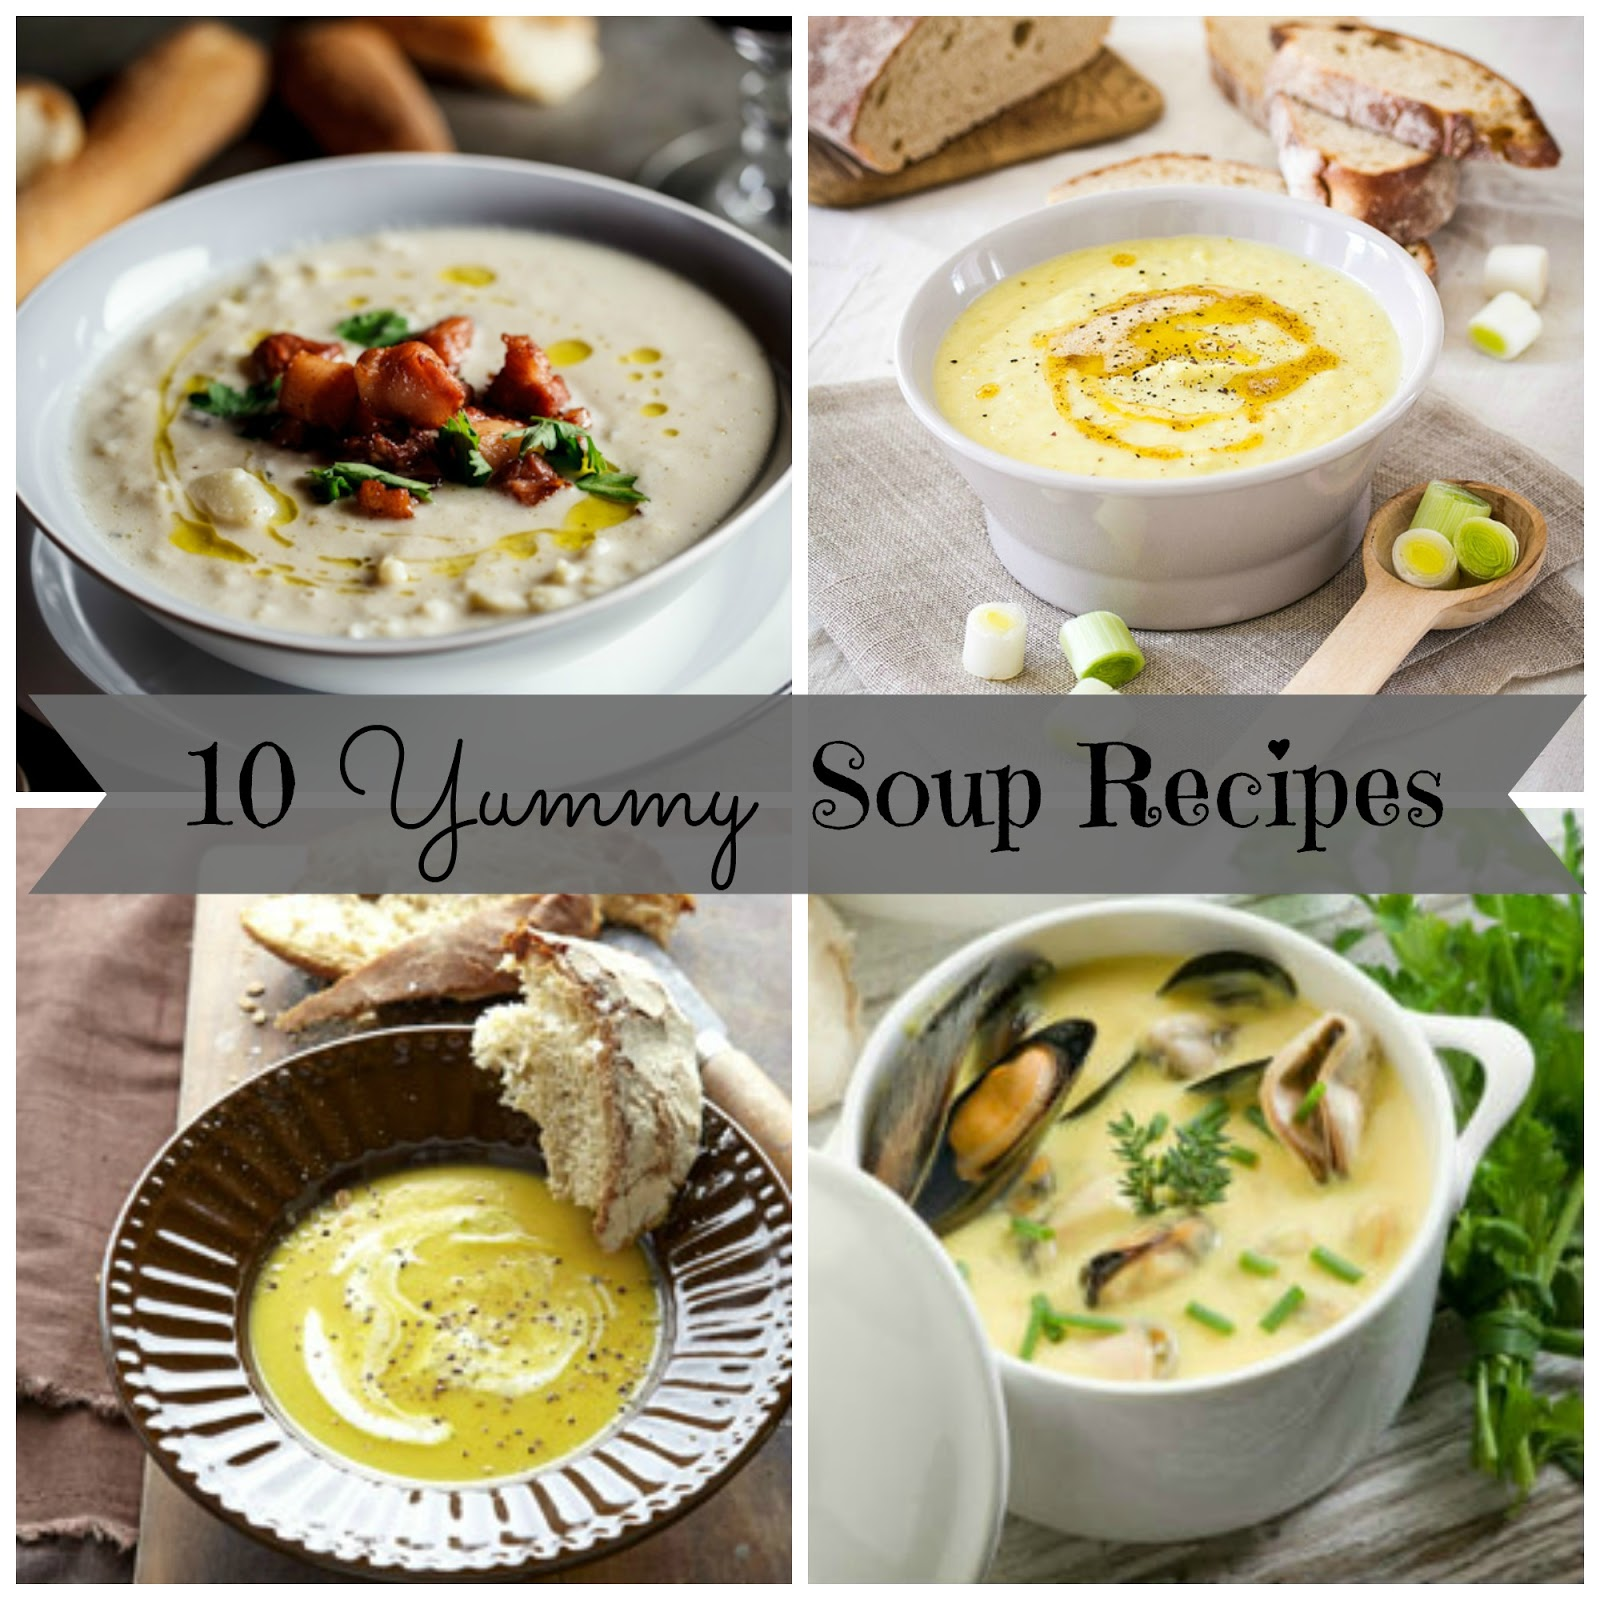 Couches And Cupcakes: 10 Yummy Soup Recipes